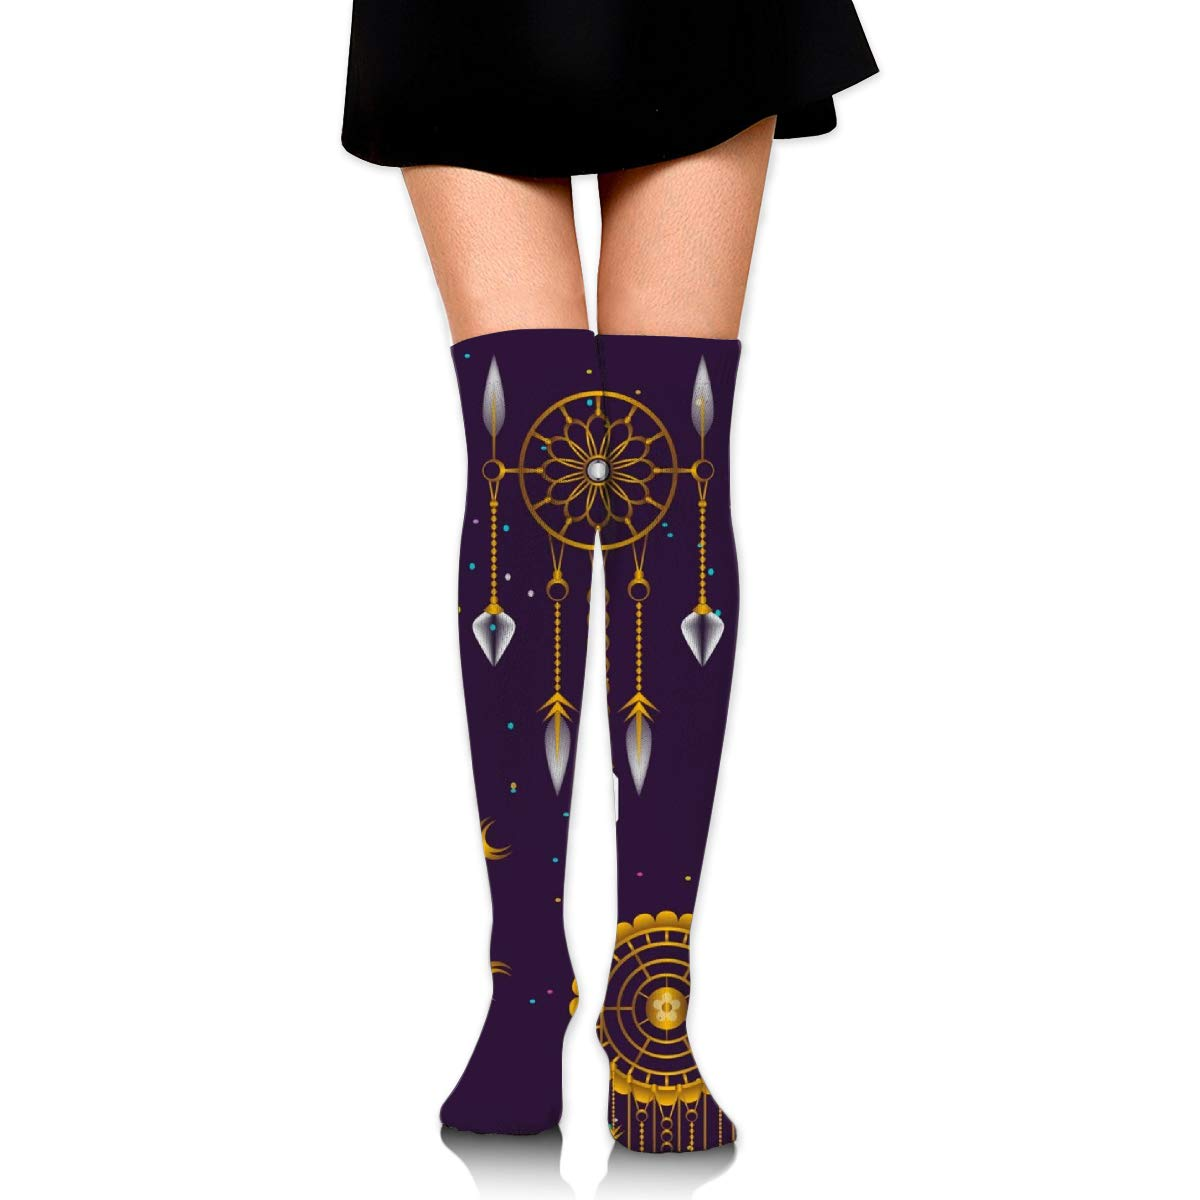 Casual Socks With Decorations Dream Catchers Print Thigh High Long Stockings Over Knee Socks